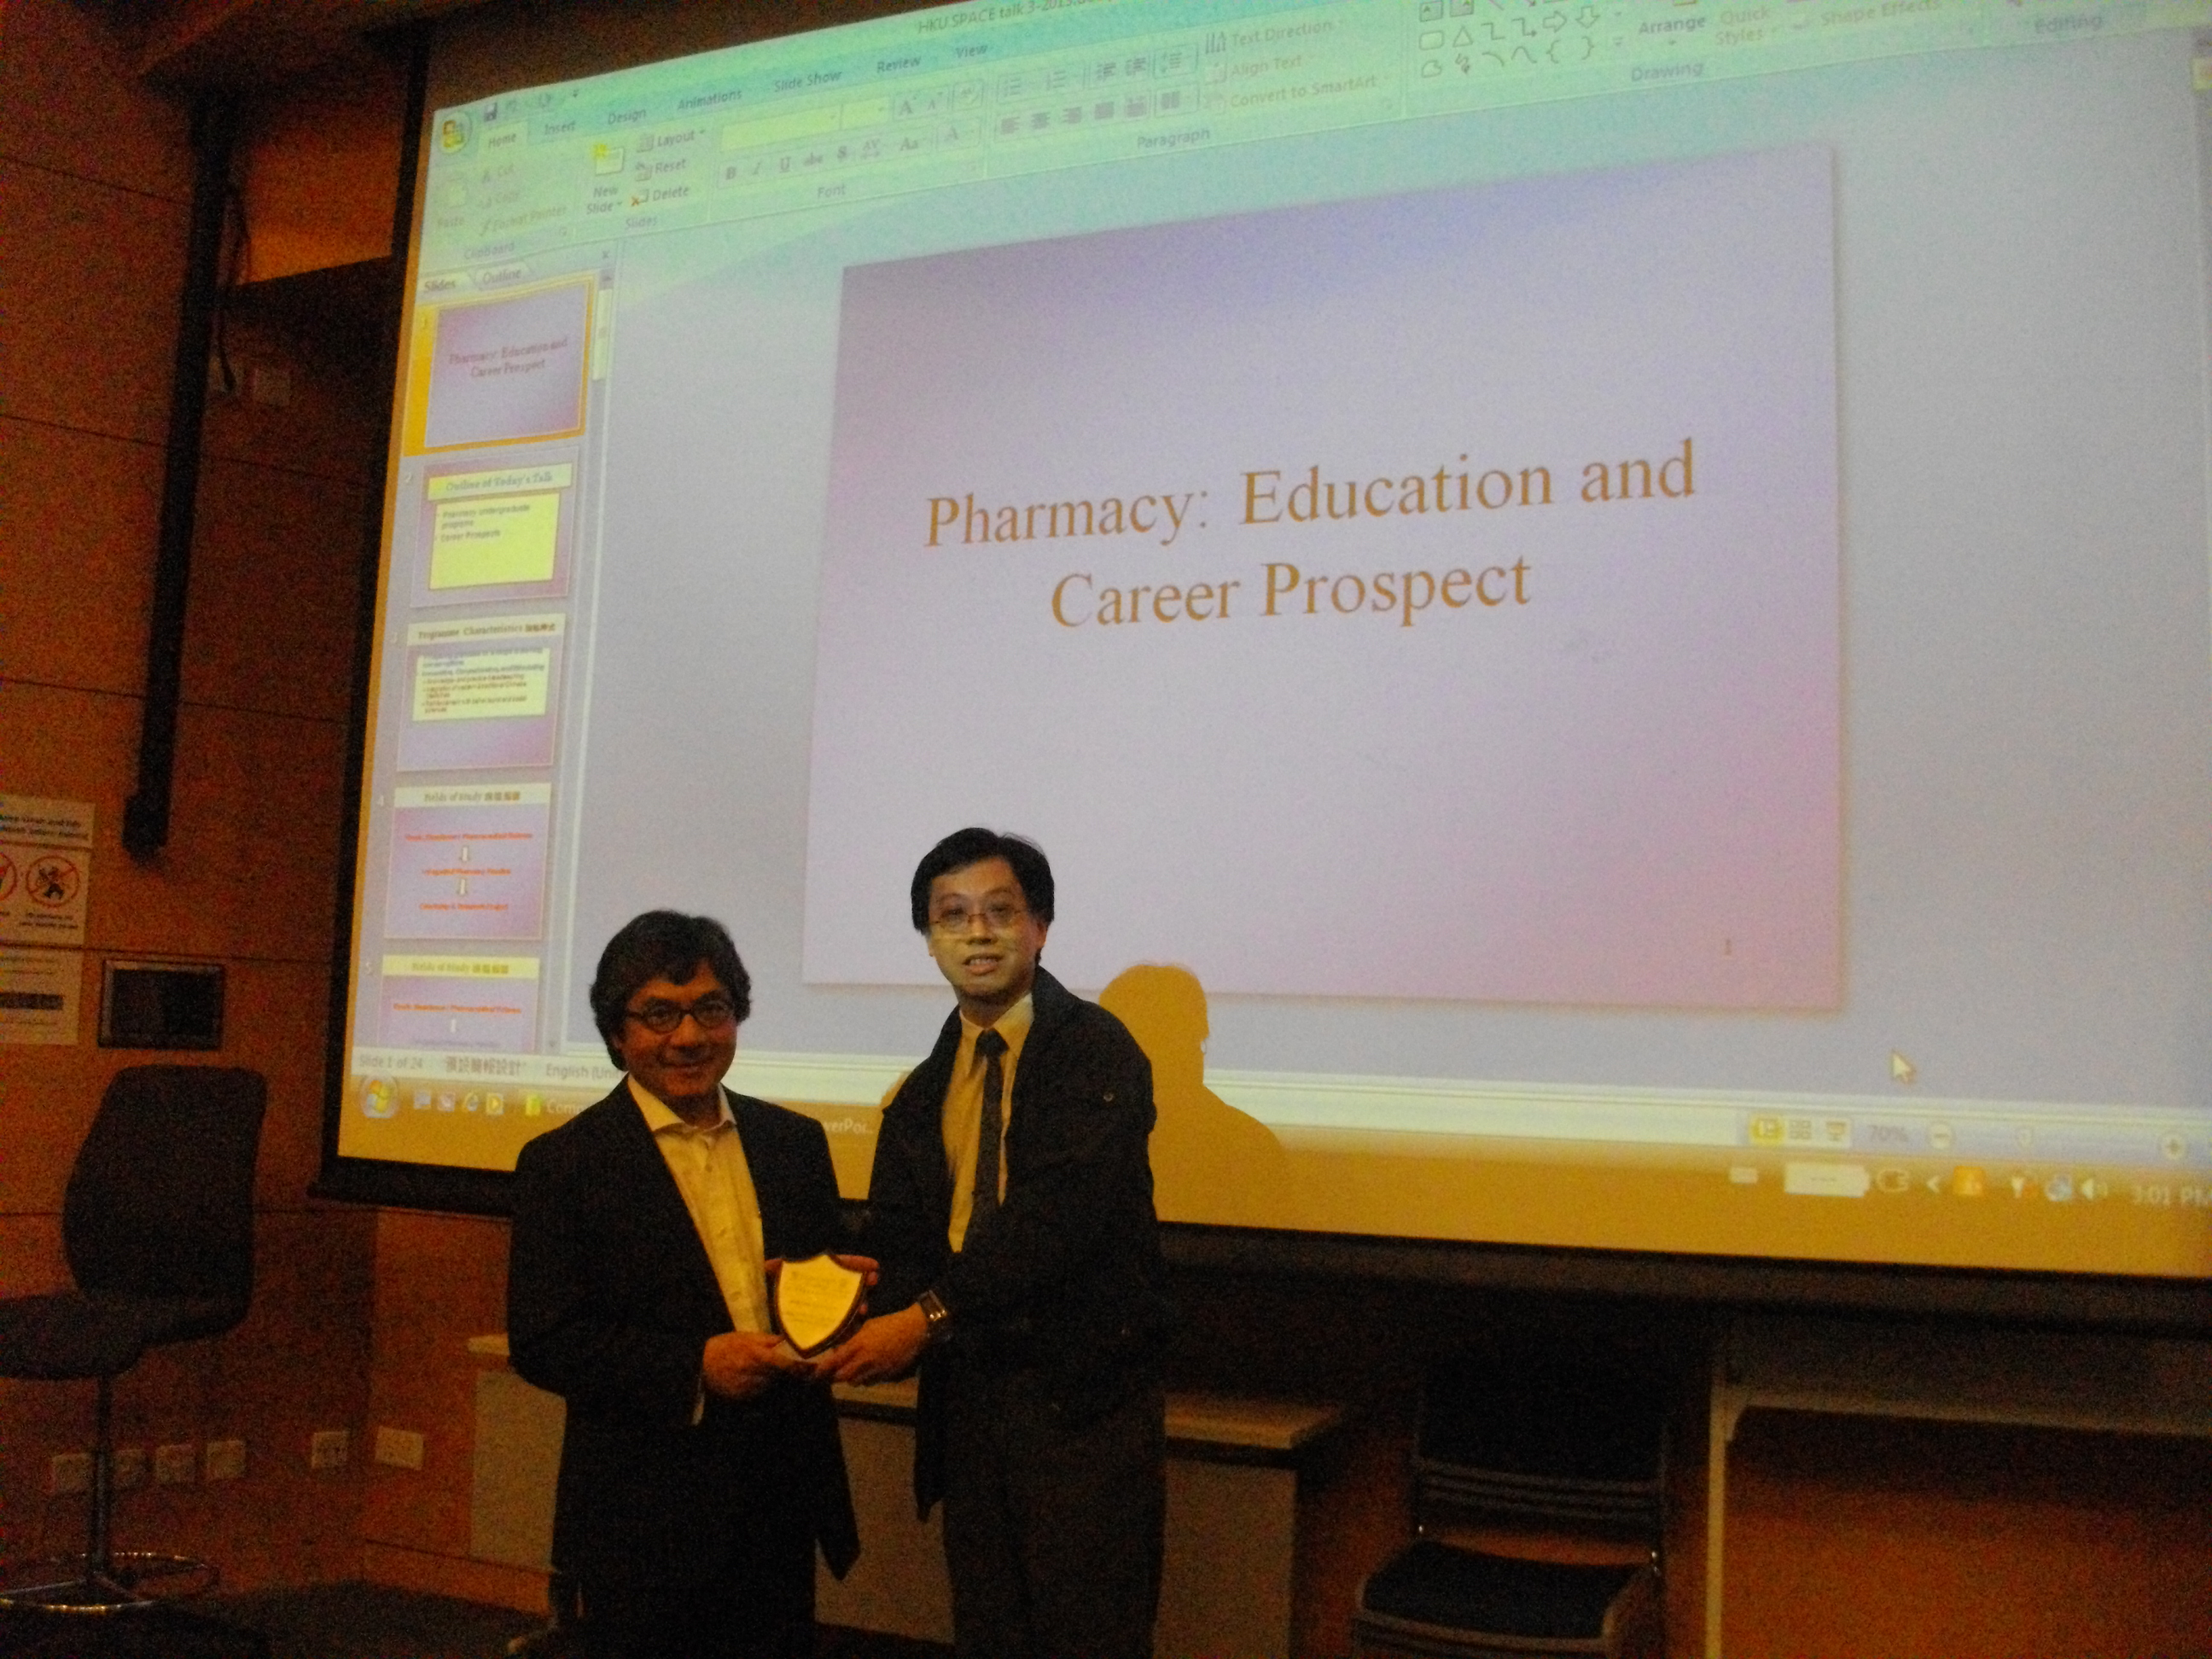 Seminar on Pharmacy: Education and Career Prospects - Photo - 3